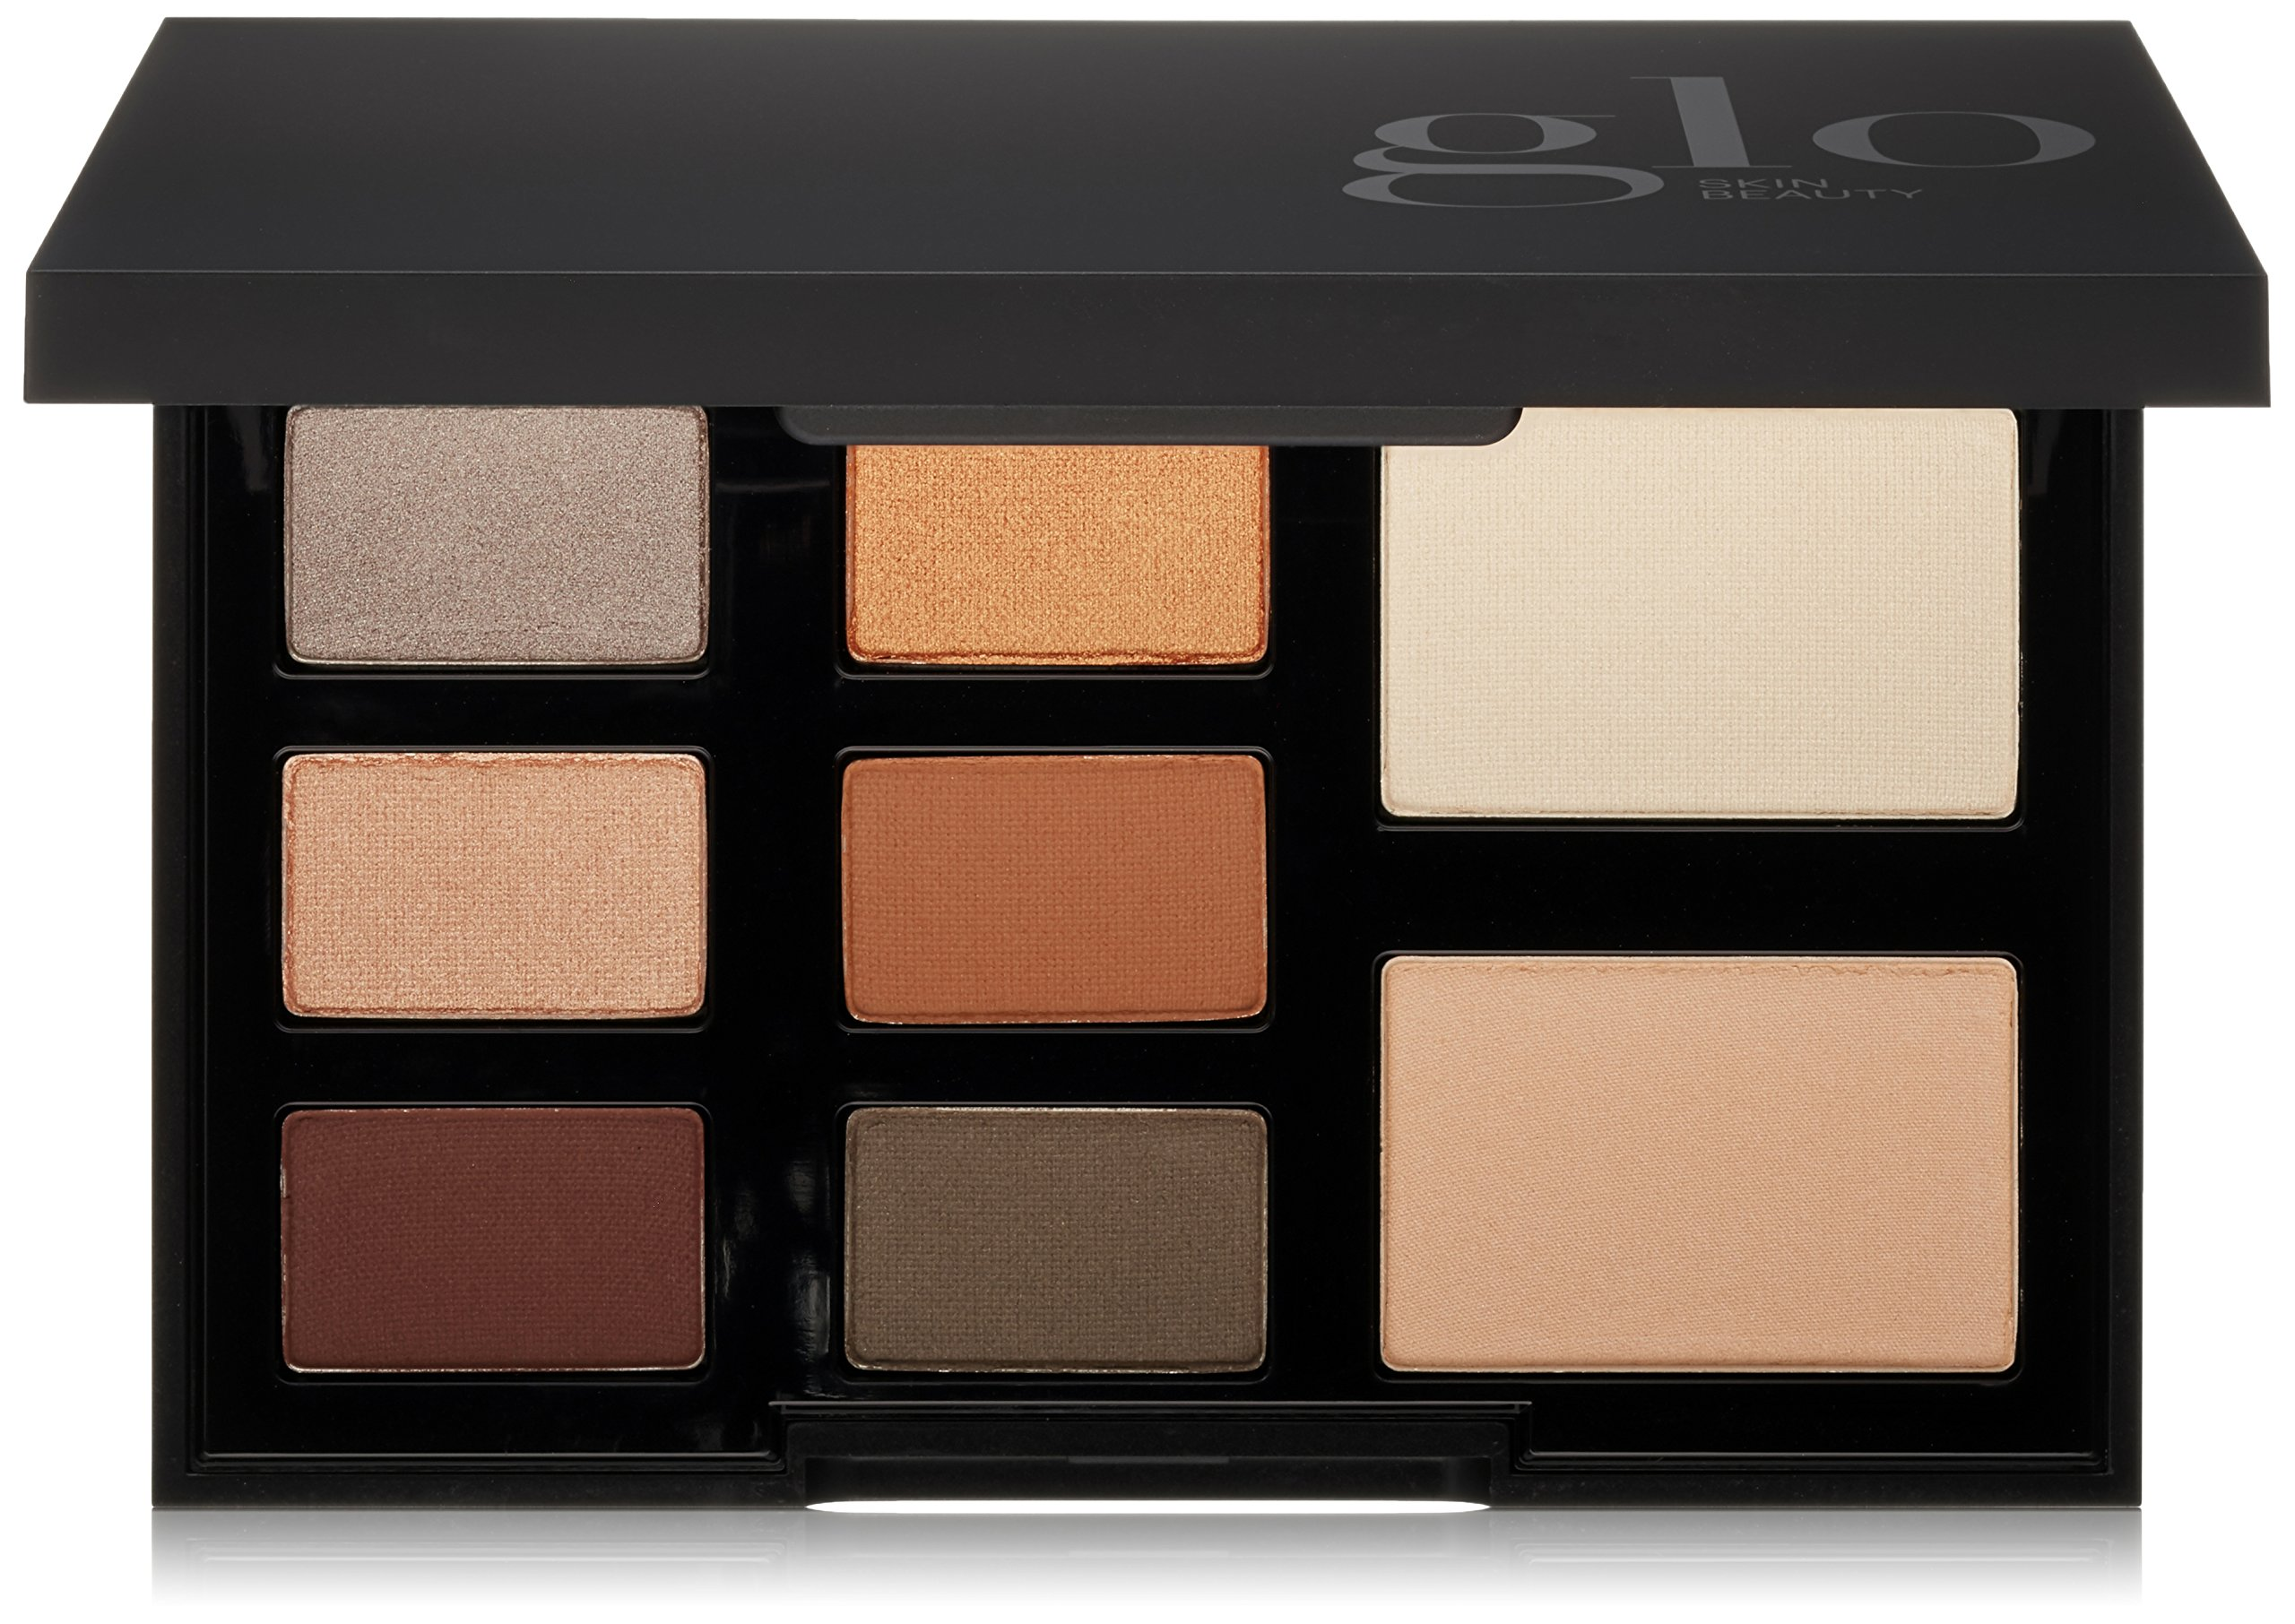 Glo Skin Beauty Shadow Palette - Mixed Metals - 8-Color Mineral Makeup Eyeshadow Palette, 4 Shade Options  | Cruelty Free